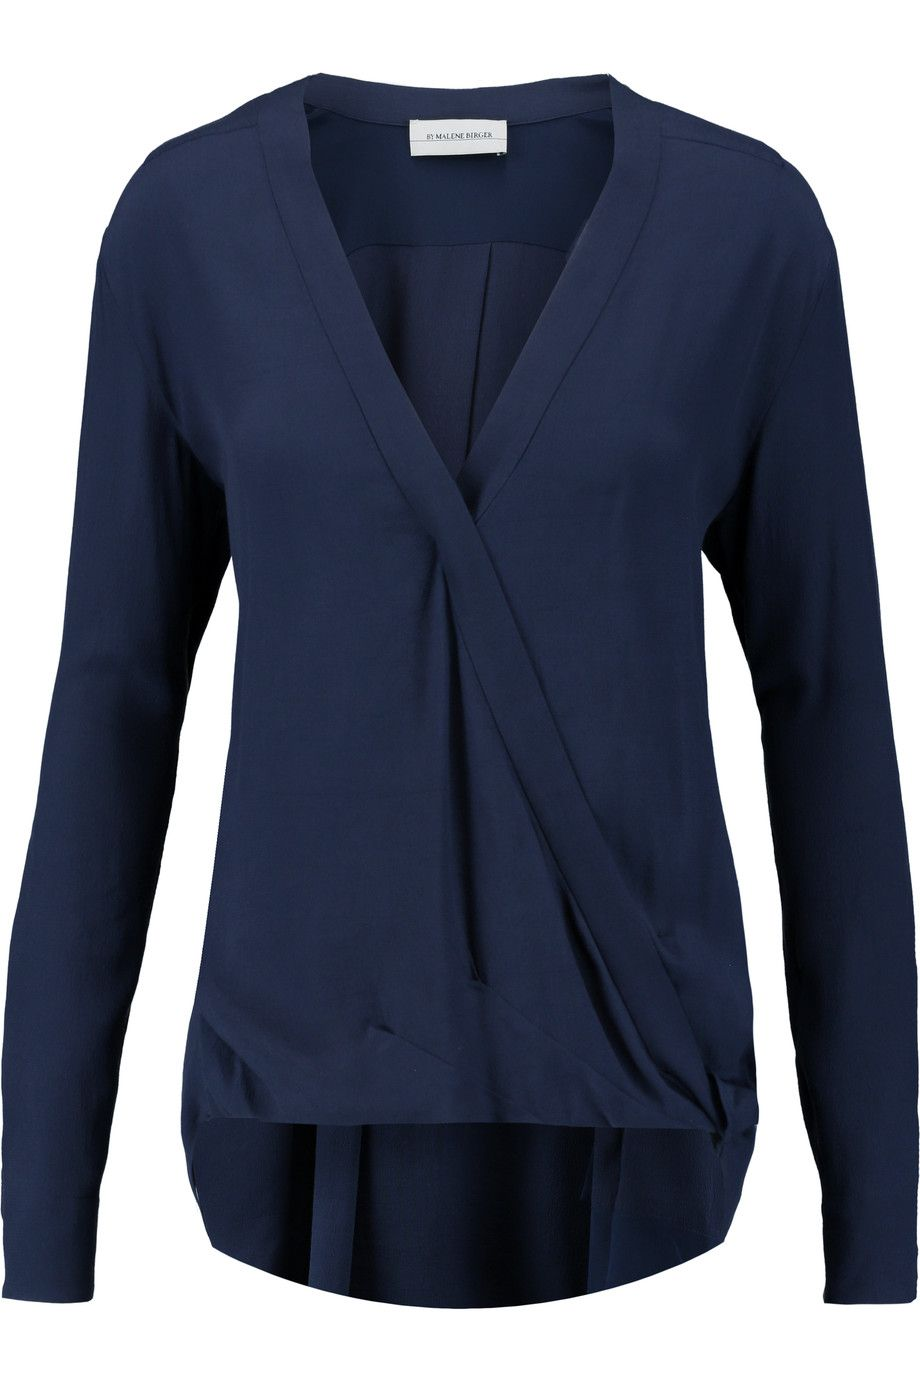 e9206dc1b2c85 BY MALENE BIRGER Hailey wrap-effect crepe blouse.  bymalenebirger  cloth   blouse